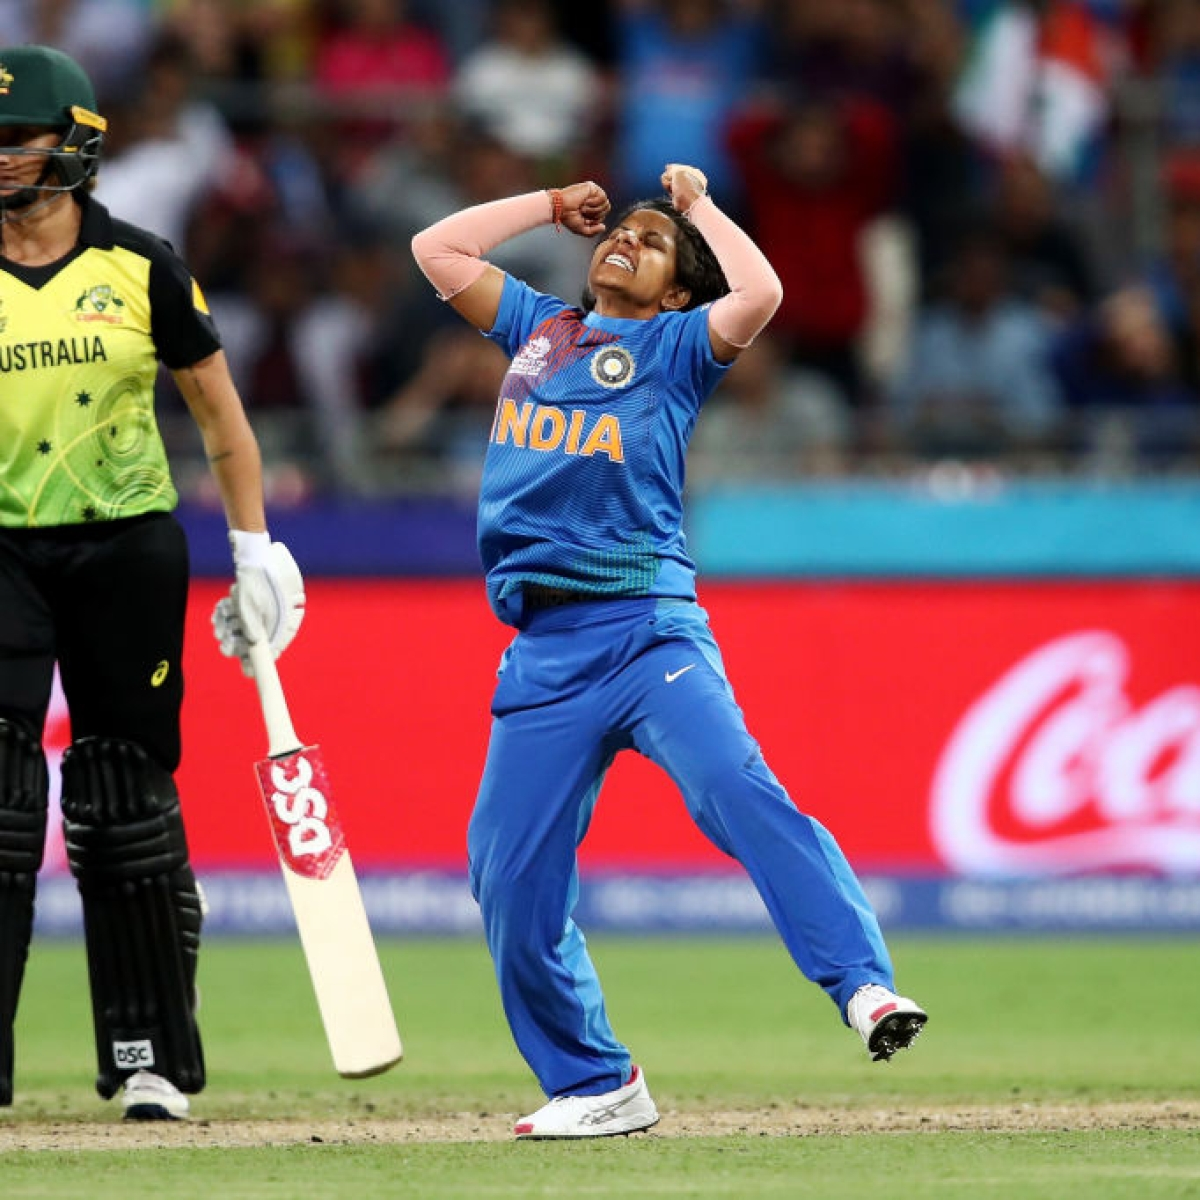 'It's a big upset': Twitter hails Women in Blue after incredible win against Australia